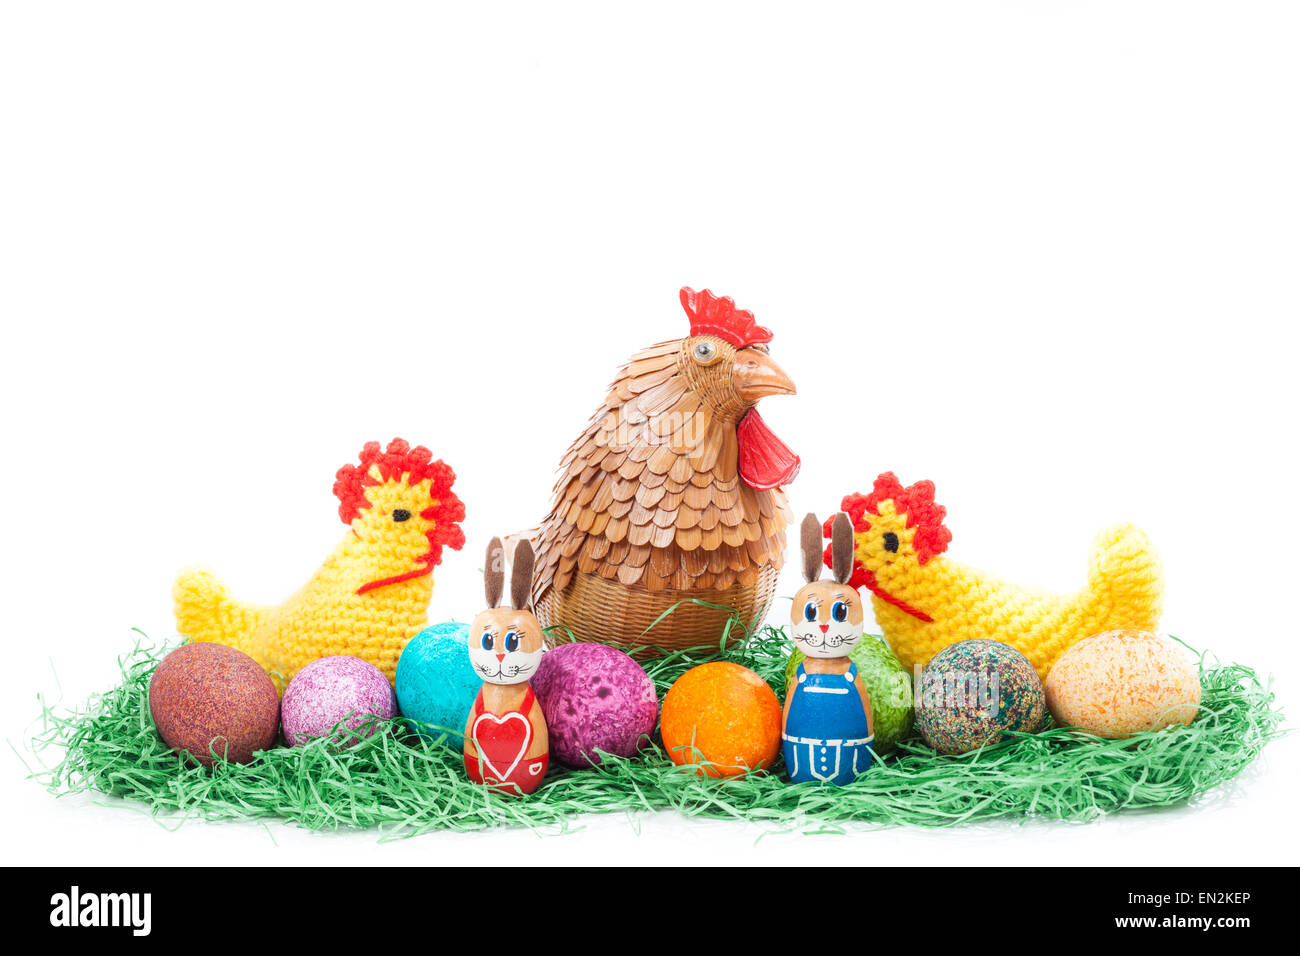 Colorulf easter nest with chick, hen and bunnies - Stock Image